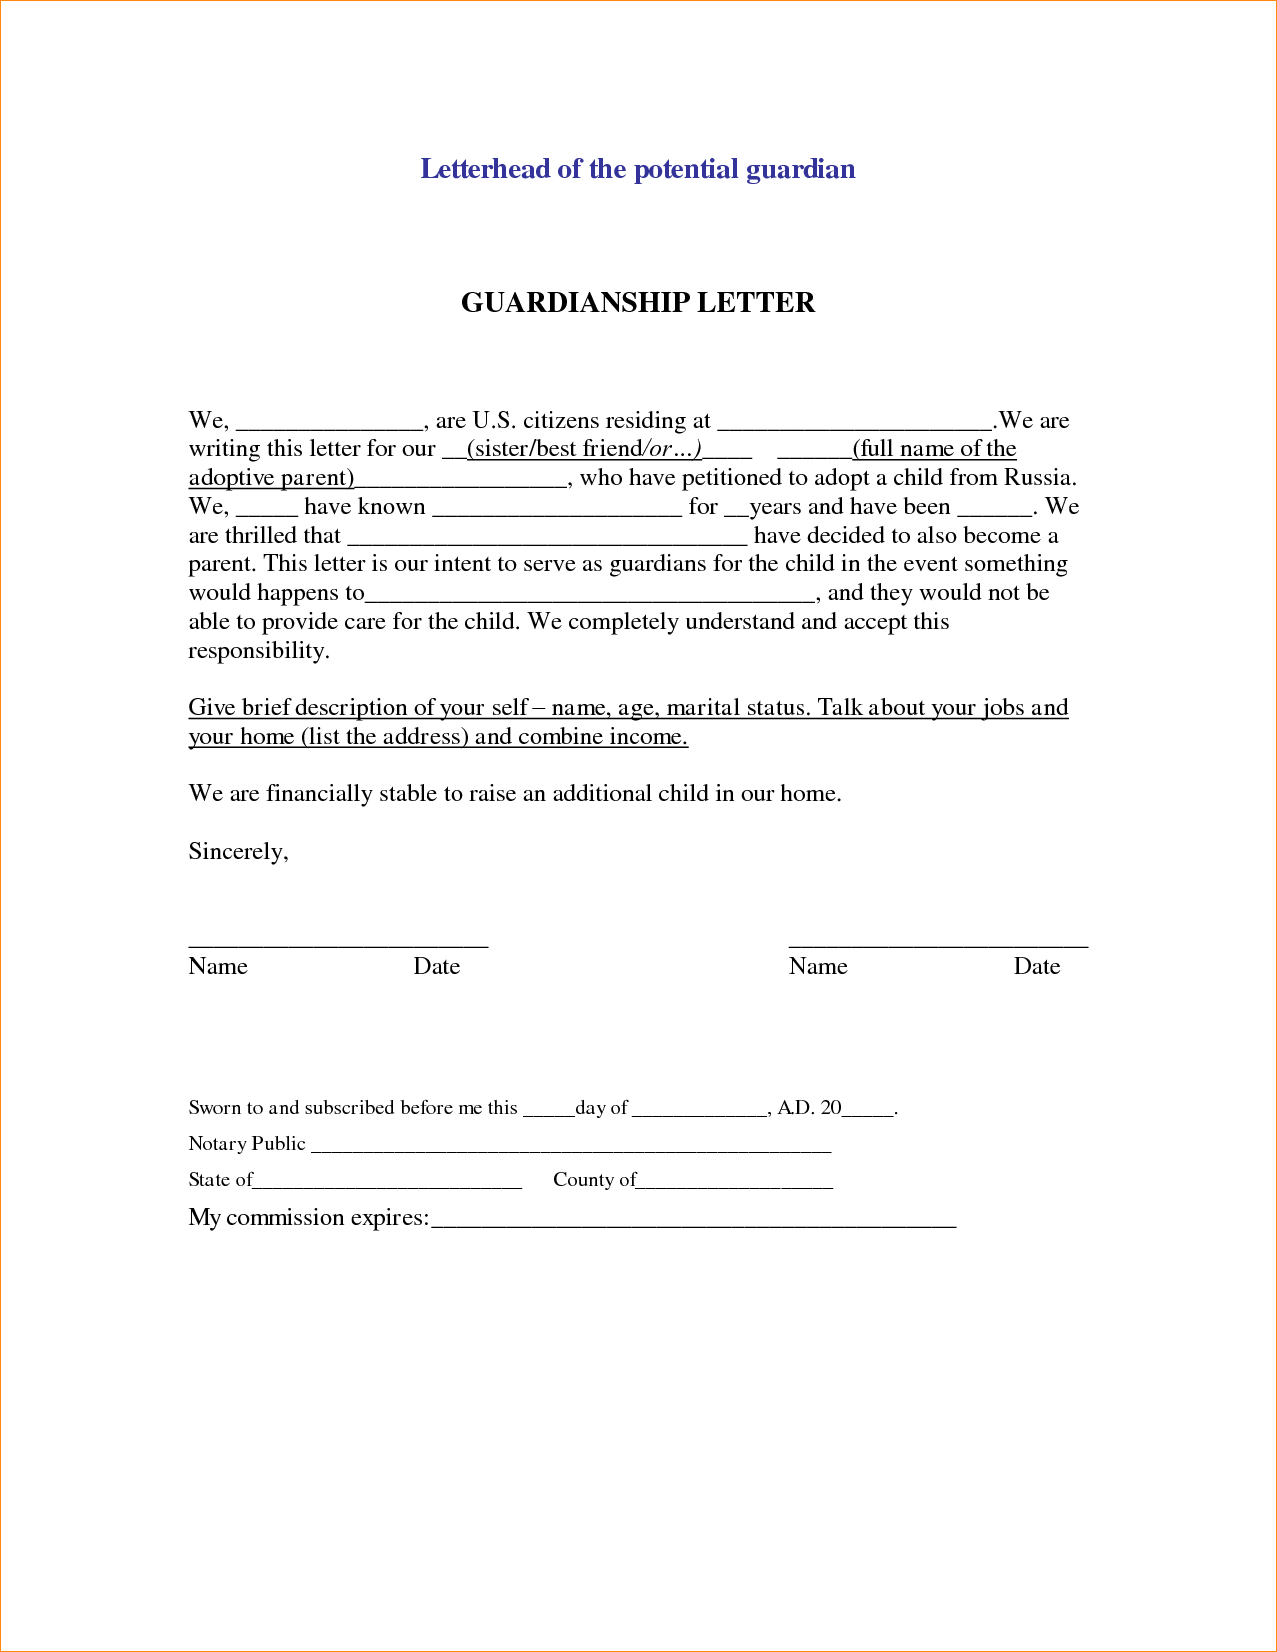 Notarized Letter for Guardianship Template - Sample Legal Letter Template